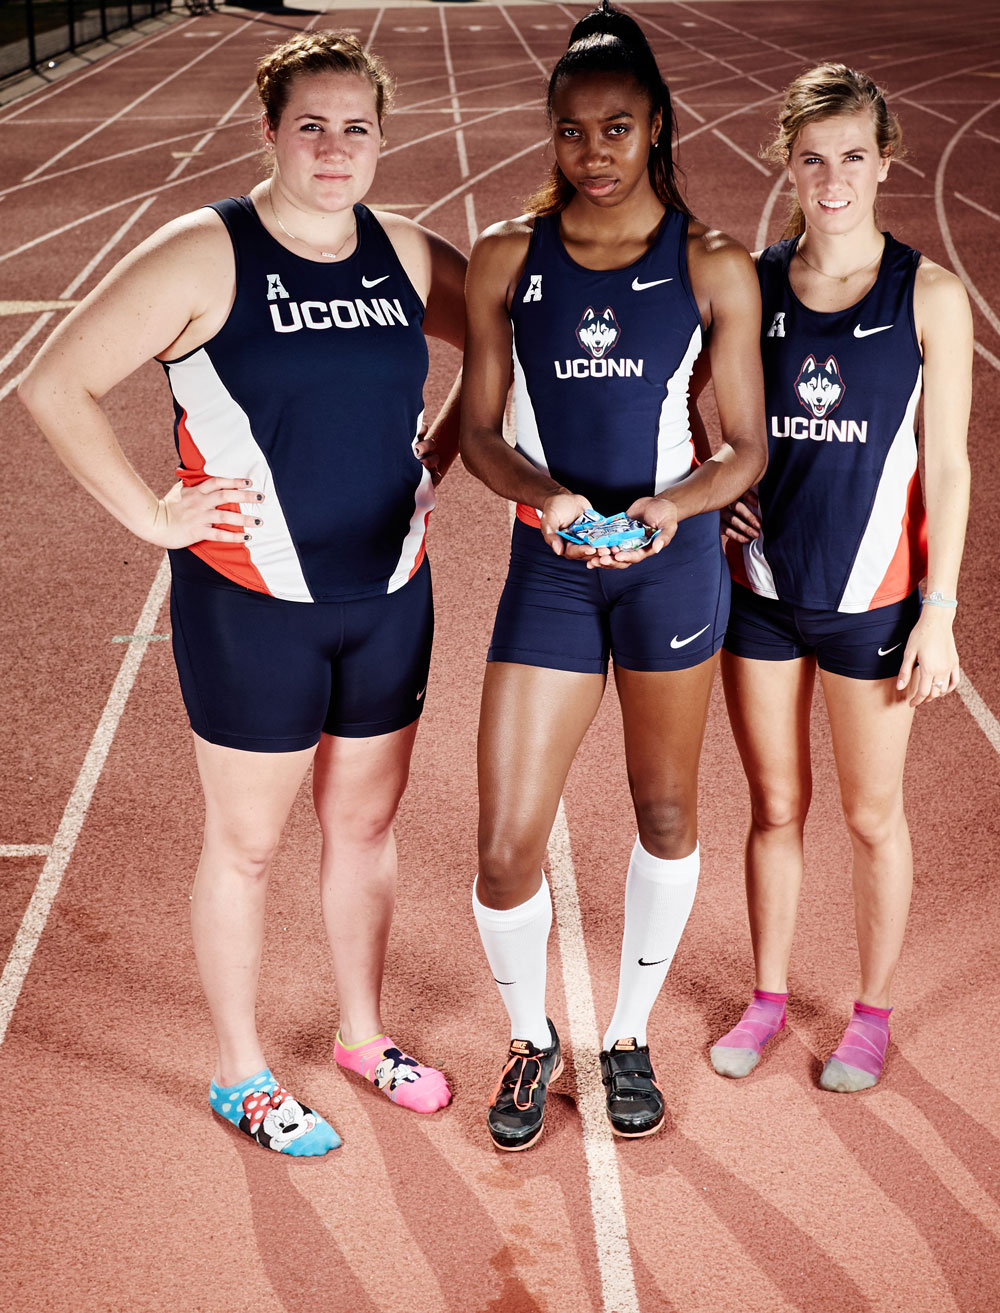 UConn Track athletes: Megan Chapman, Odrine Belot and Alana Pearl